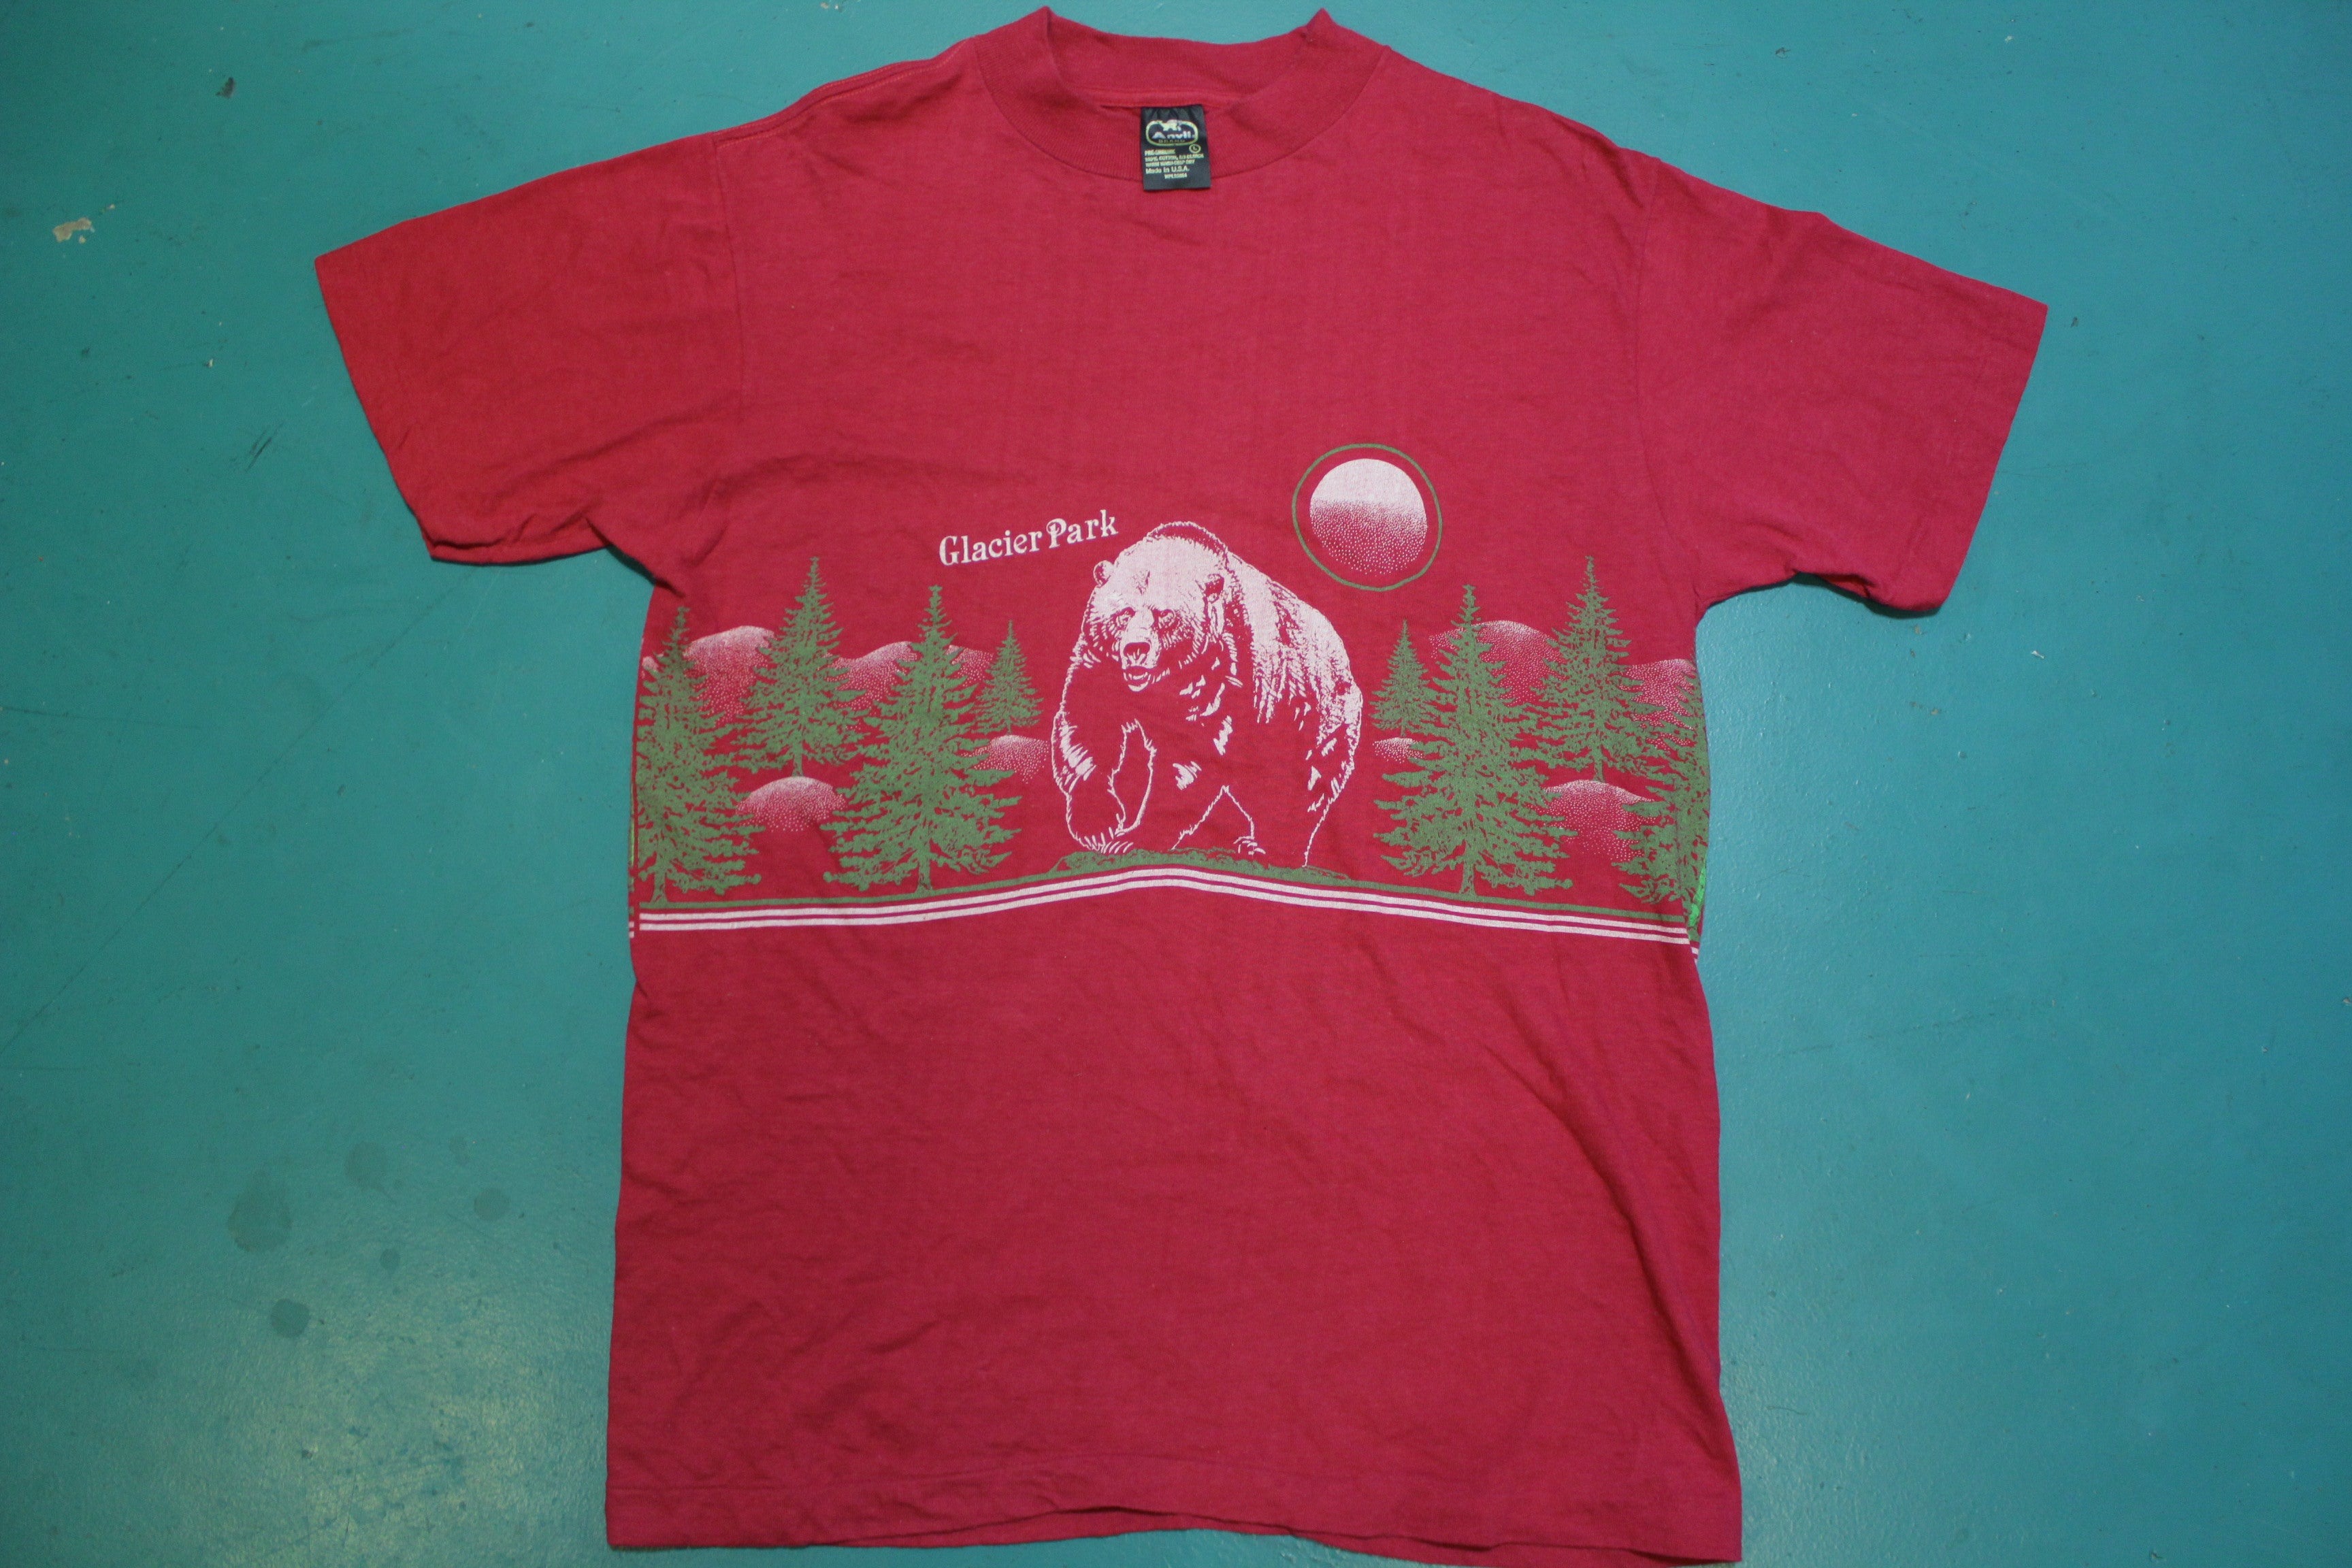 Glacier Park 80's Single Stitch Made in USA Pink Bear and Forest Vintage T-shirt